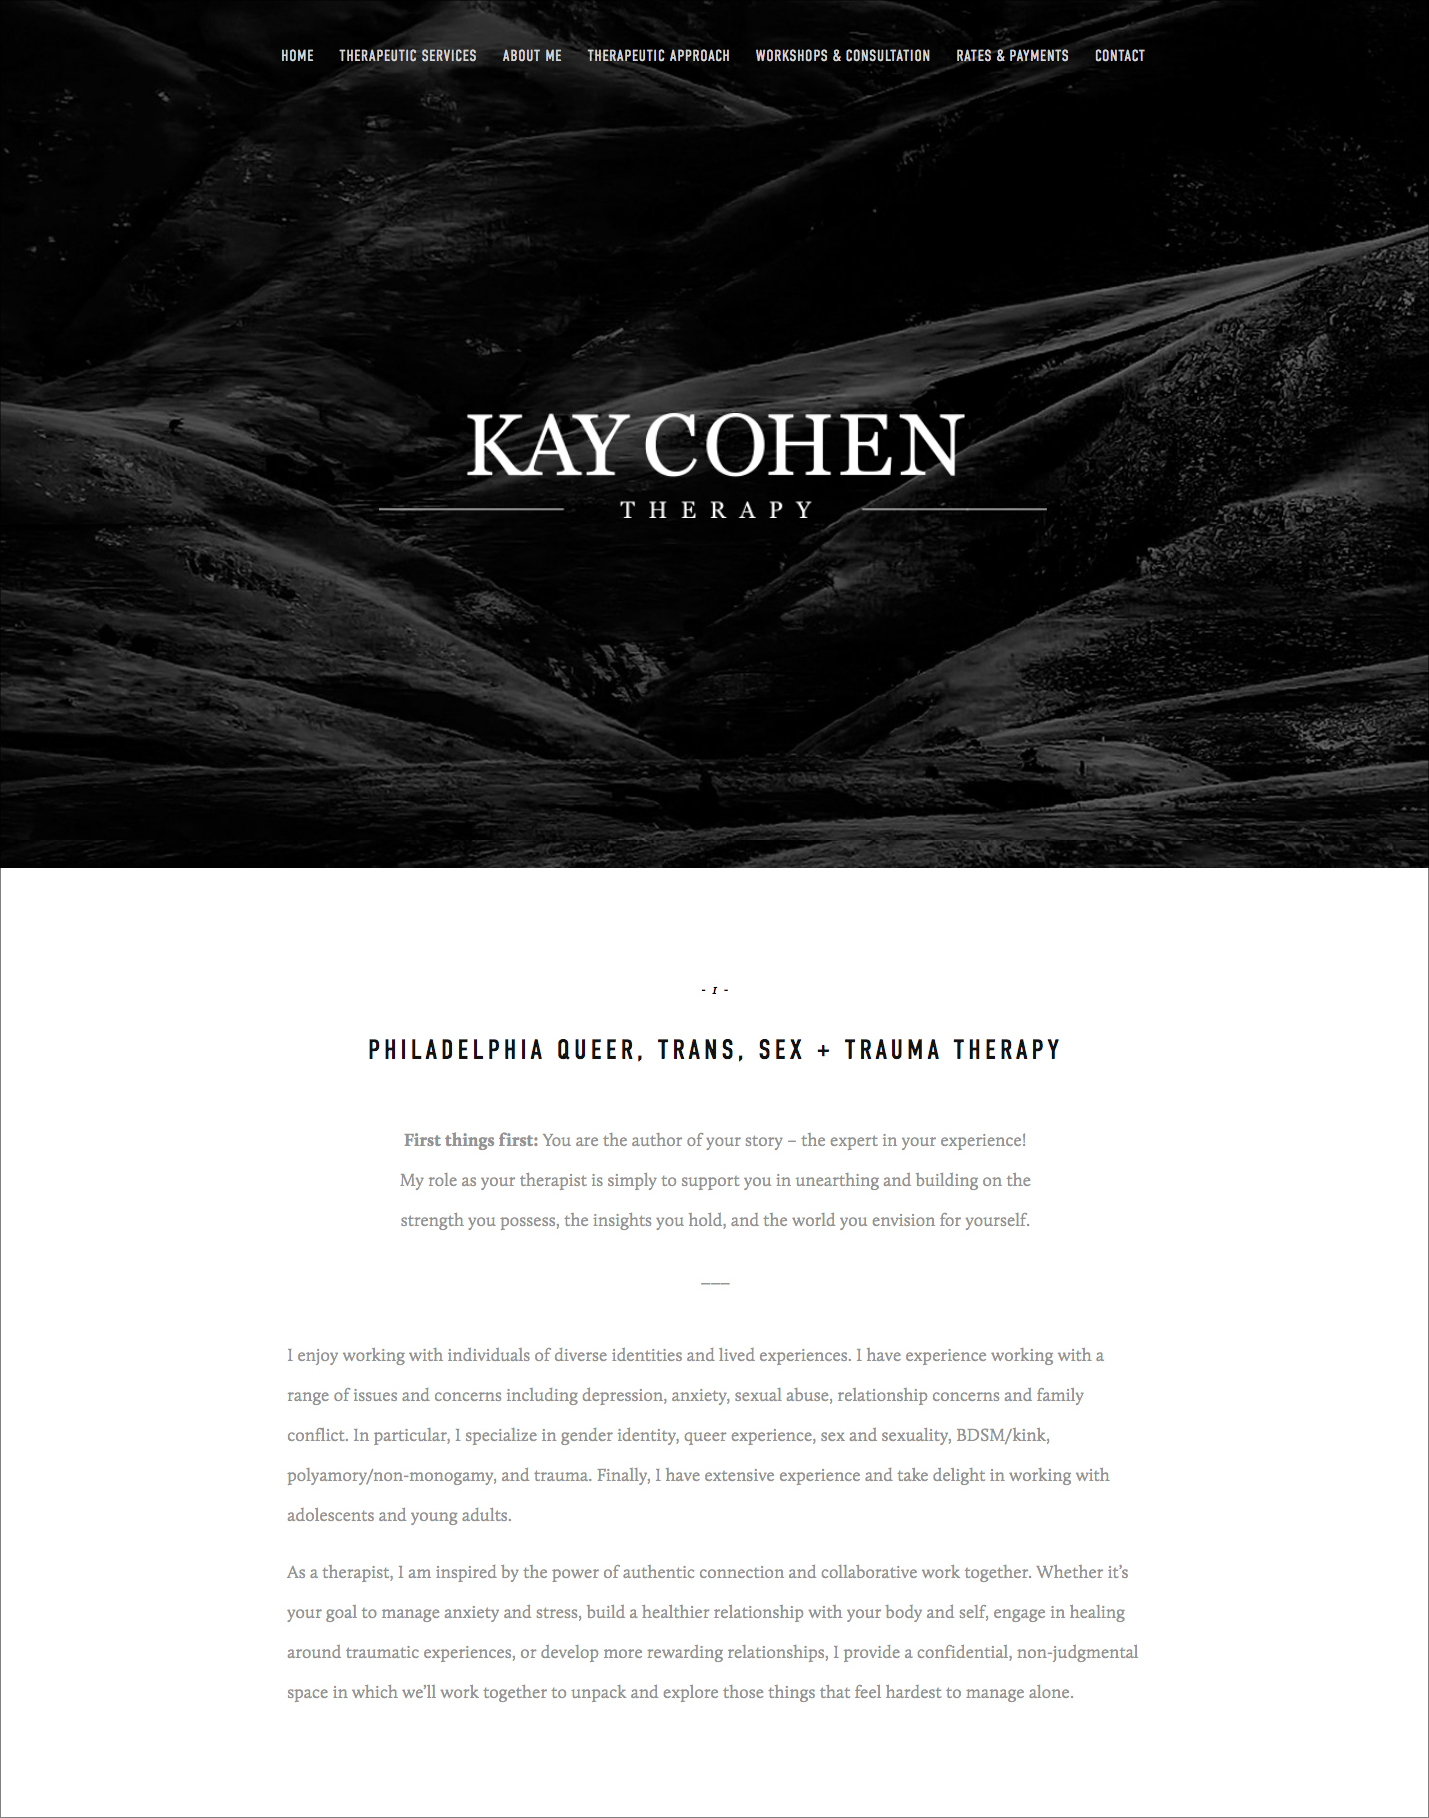 Kay Cohen Therapy website copy.jpg